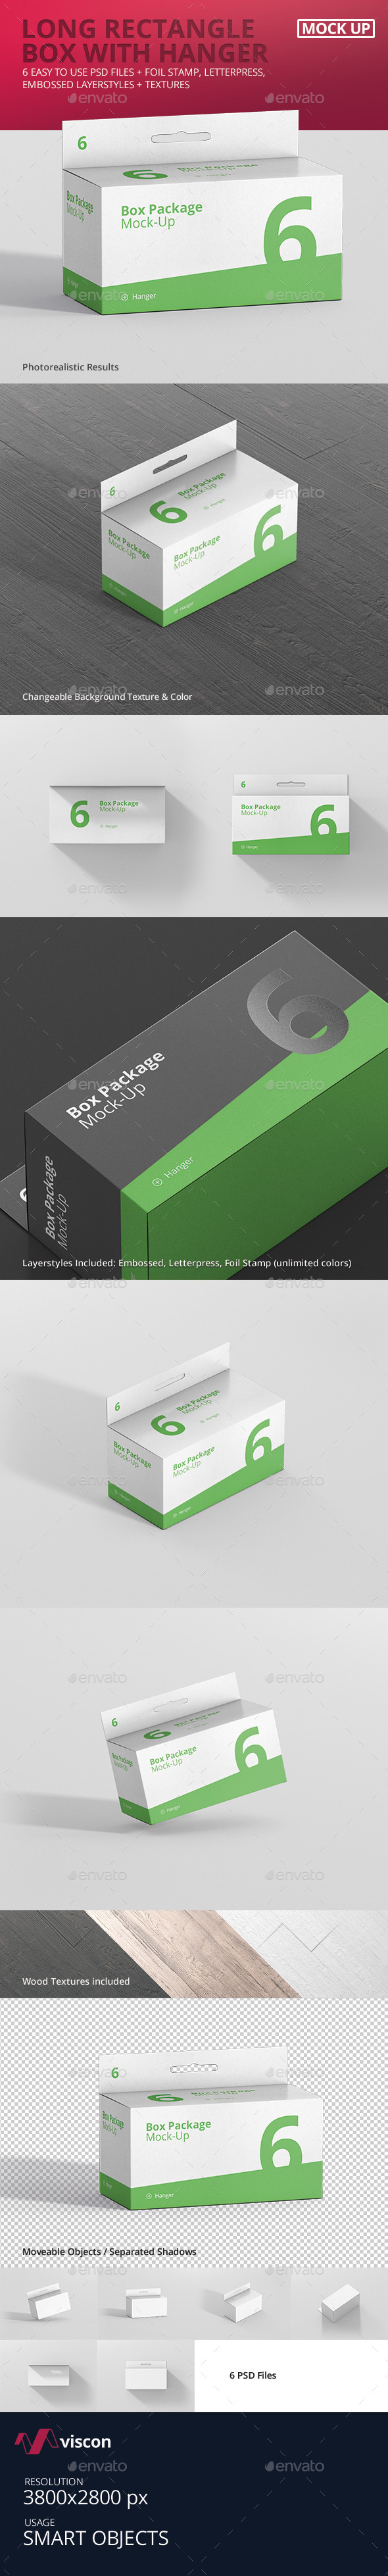 Package Box Mock-Up - Long Rectangle with Hanger